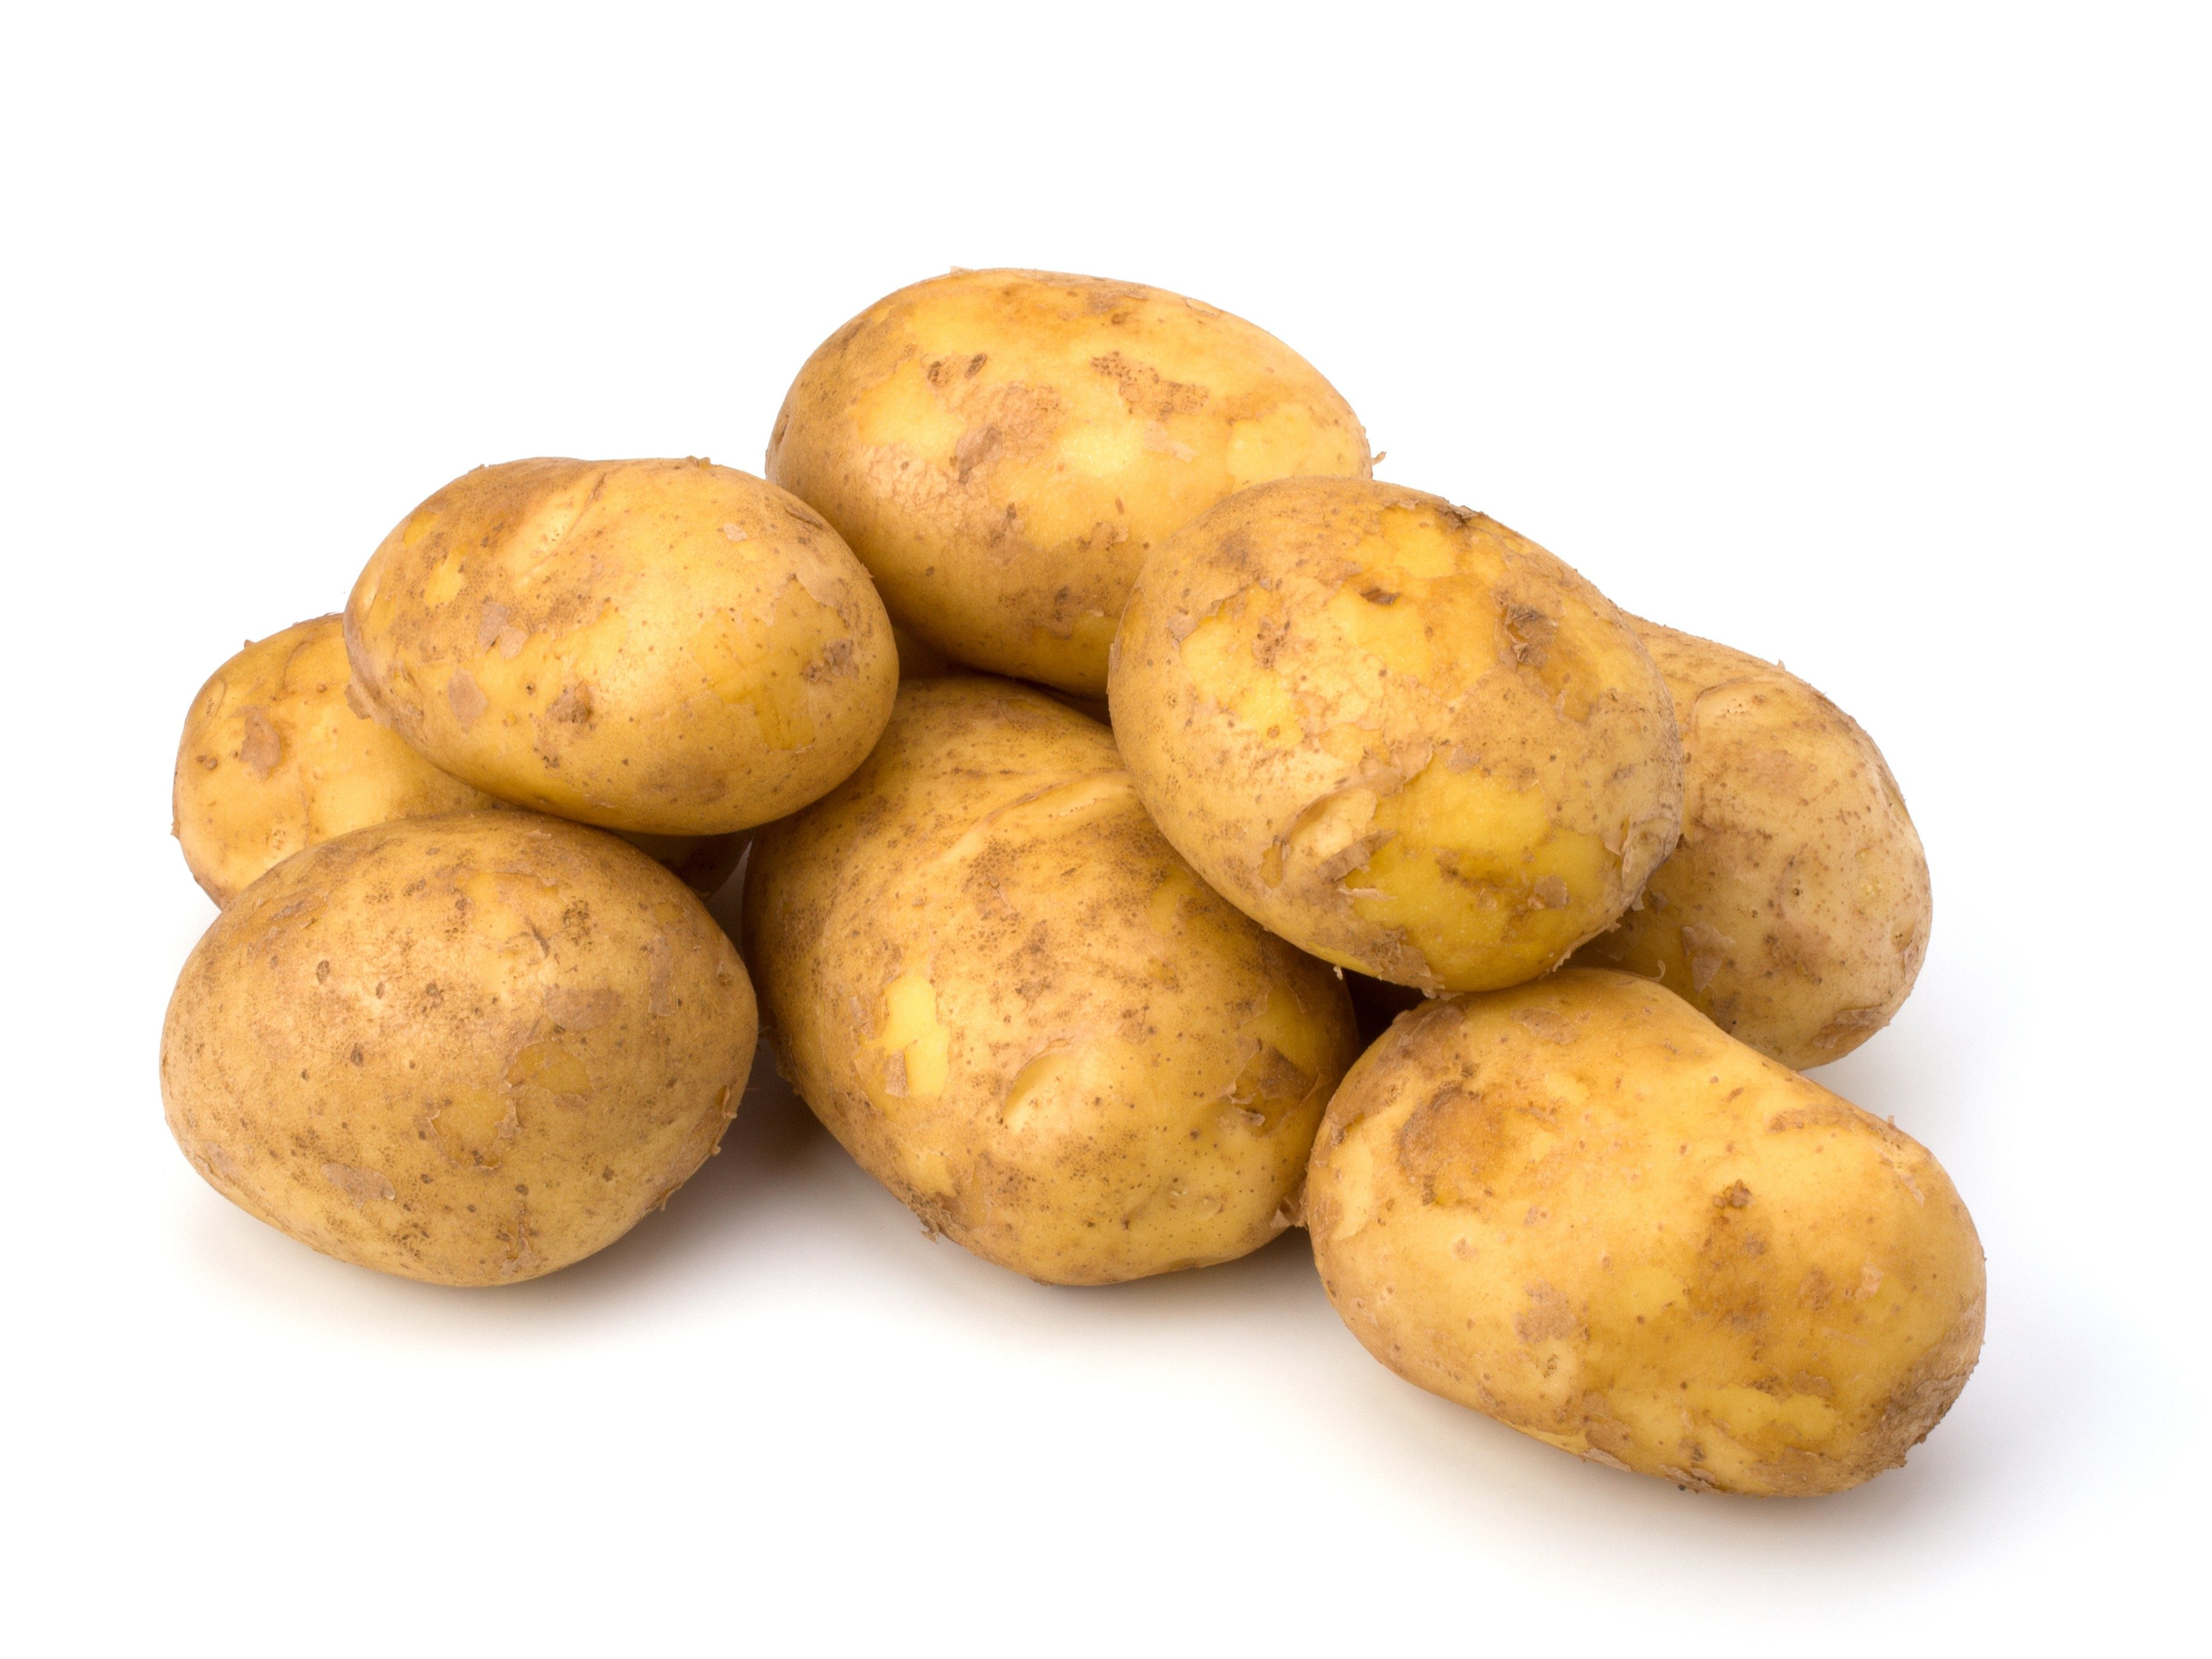 Use a Potato to Make a Hot or Cold Compress